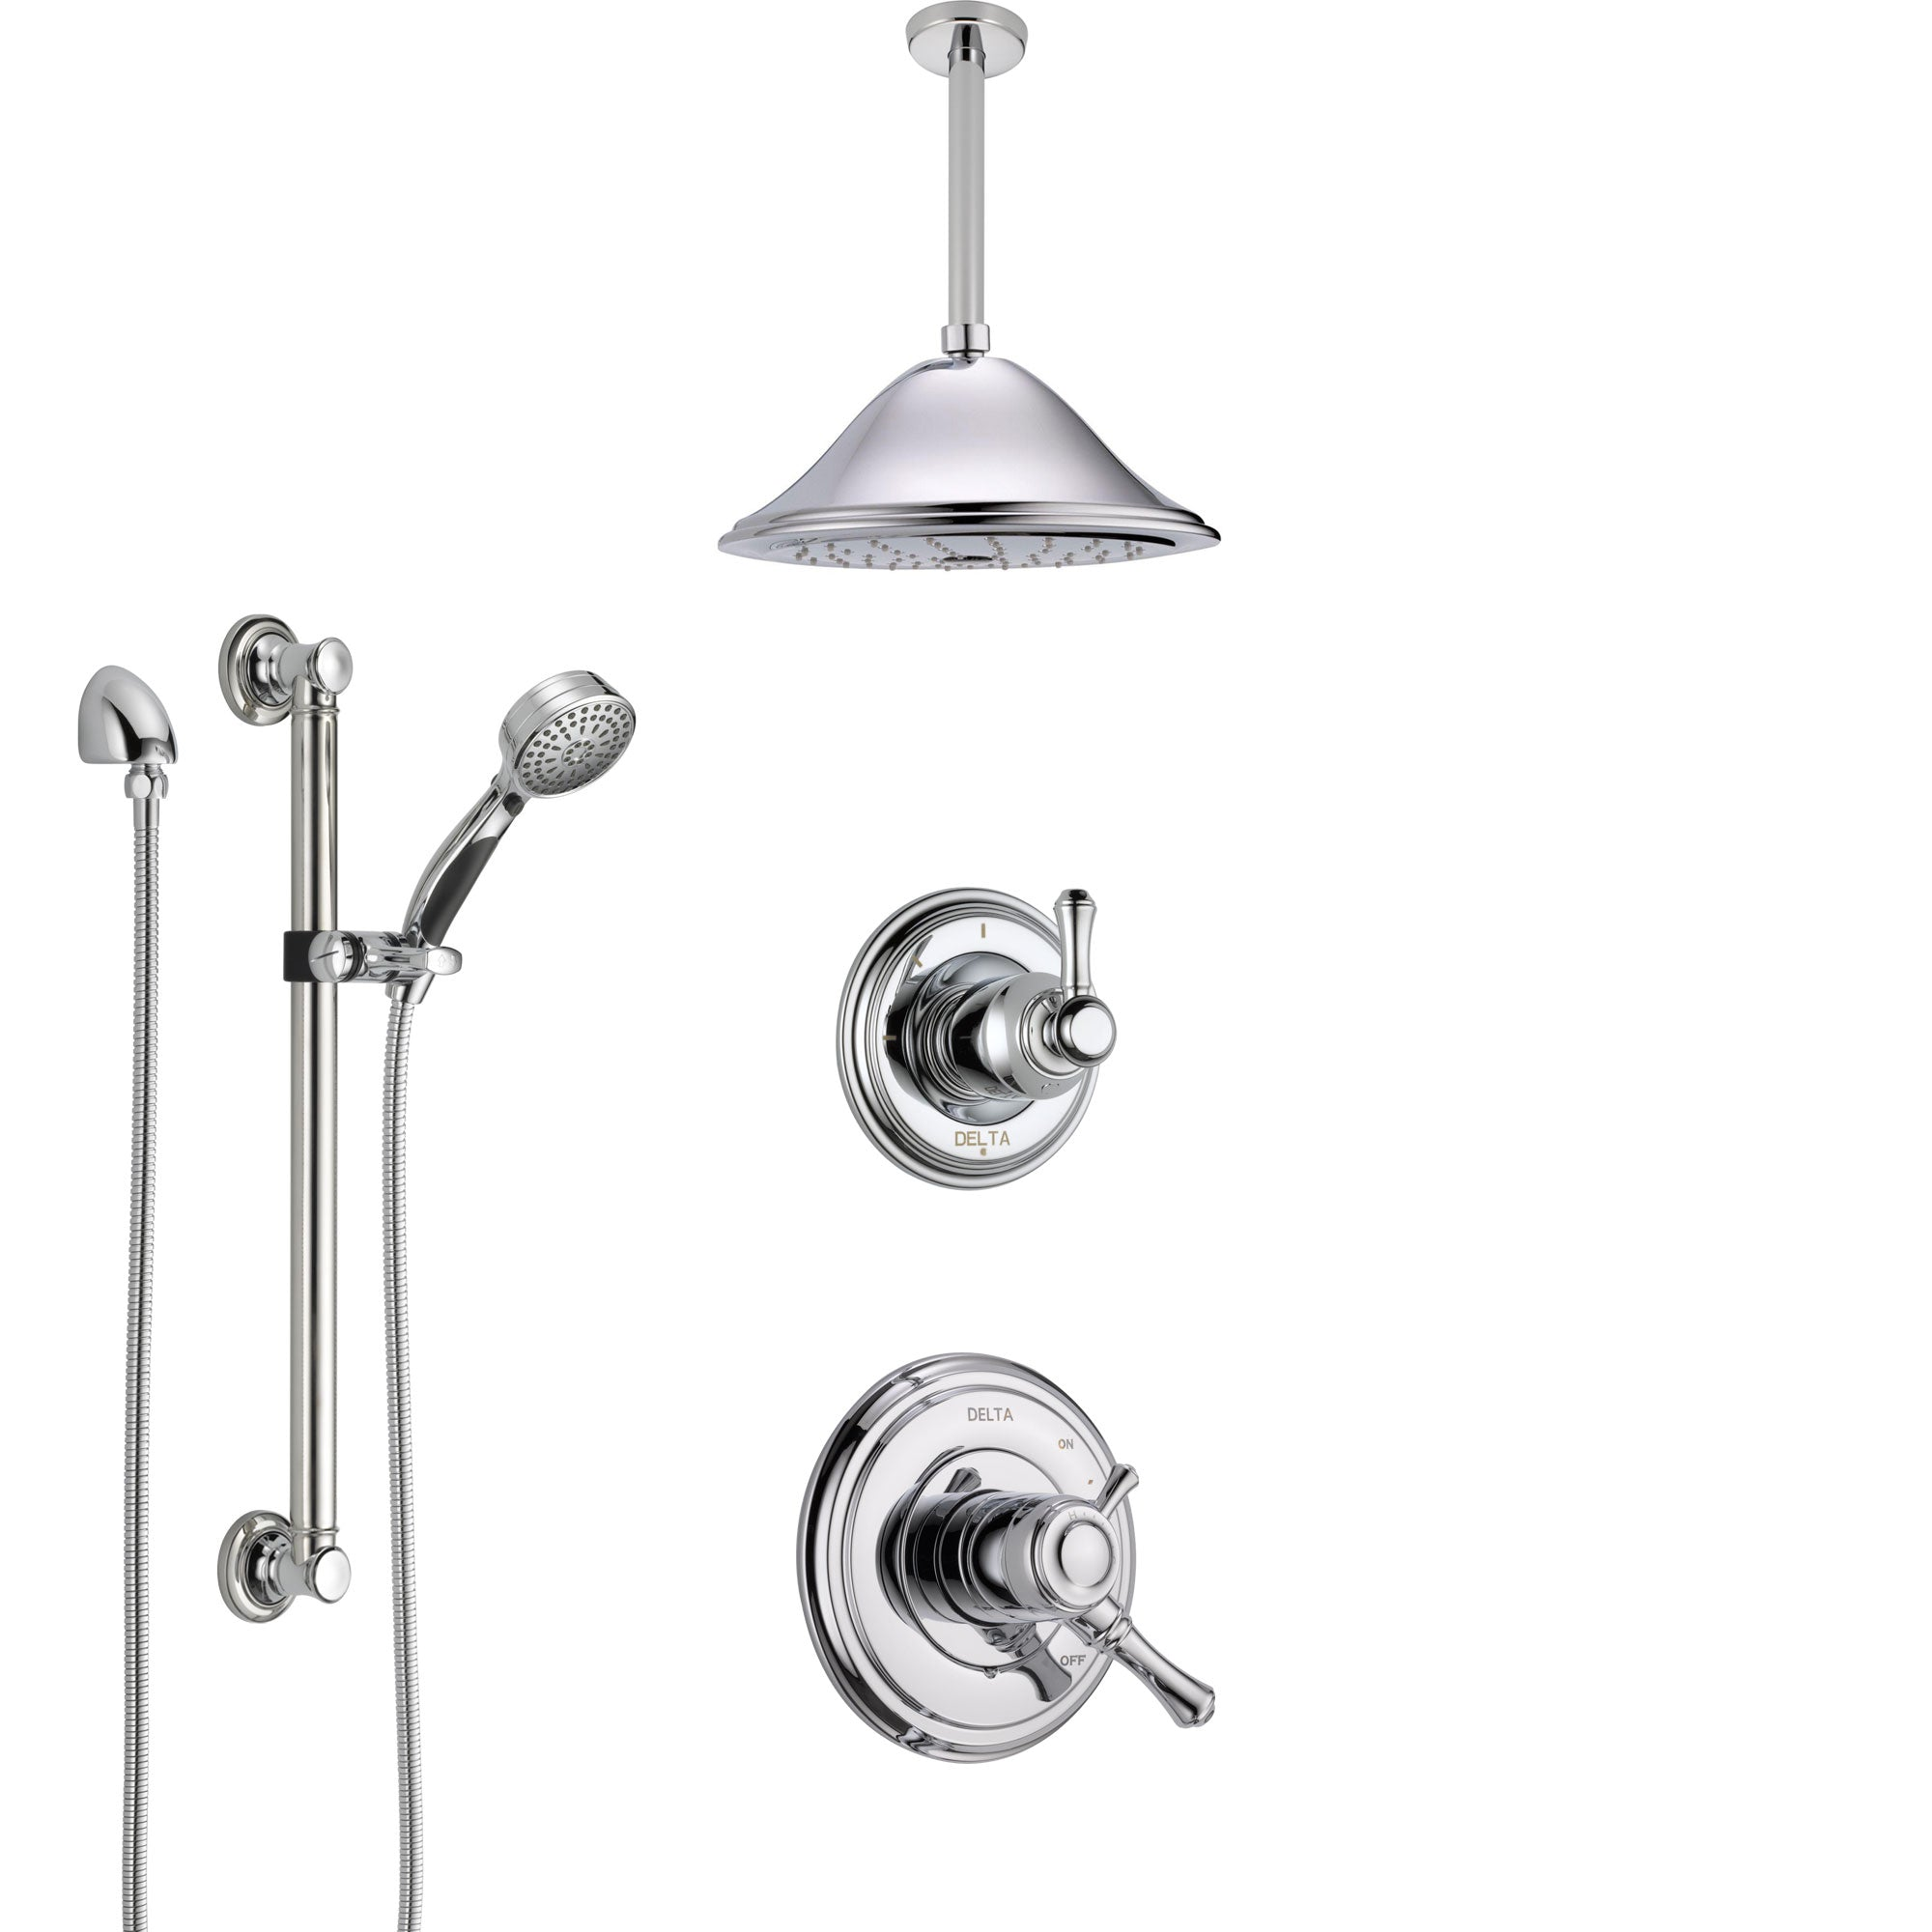 Delta Cassidy Chrome Finish Shower System with Dual Control Handle, Diverter, Ceiling Mount Showerhead, and Hand Shower with Grab Bar SS17974